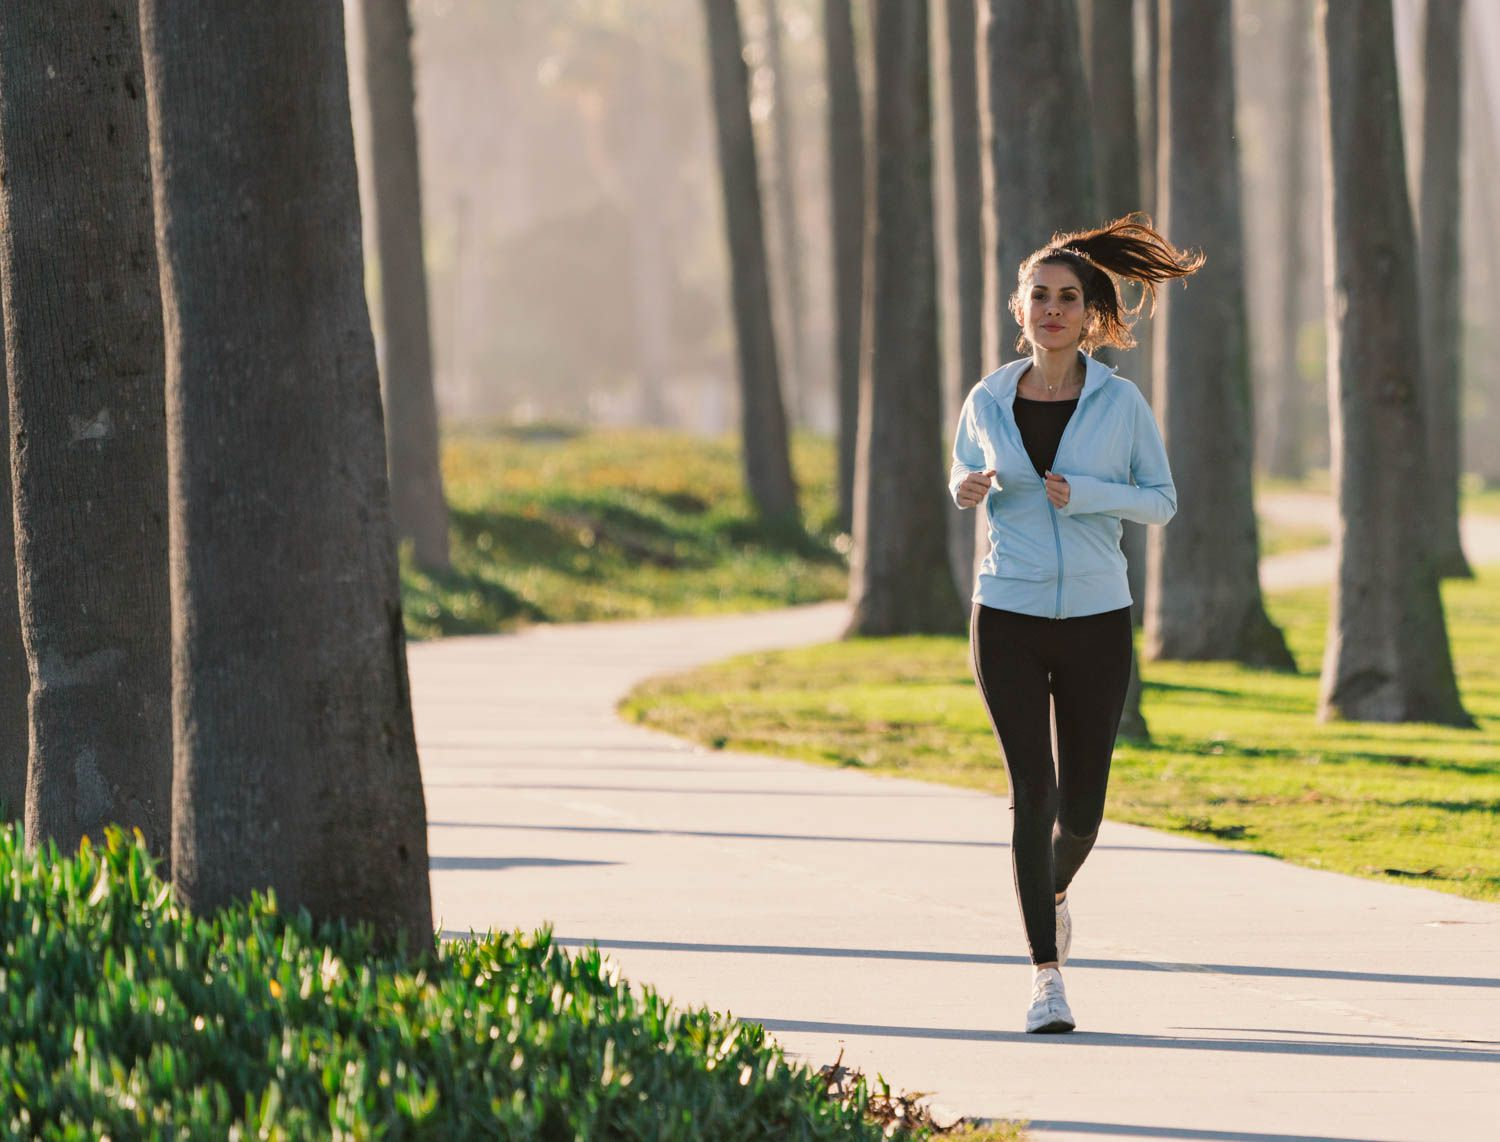 How to Start Running: The Absolute Beginners' Guide